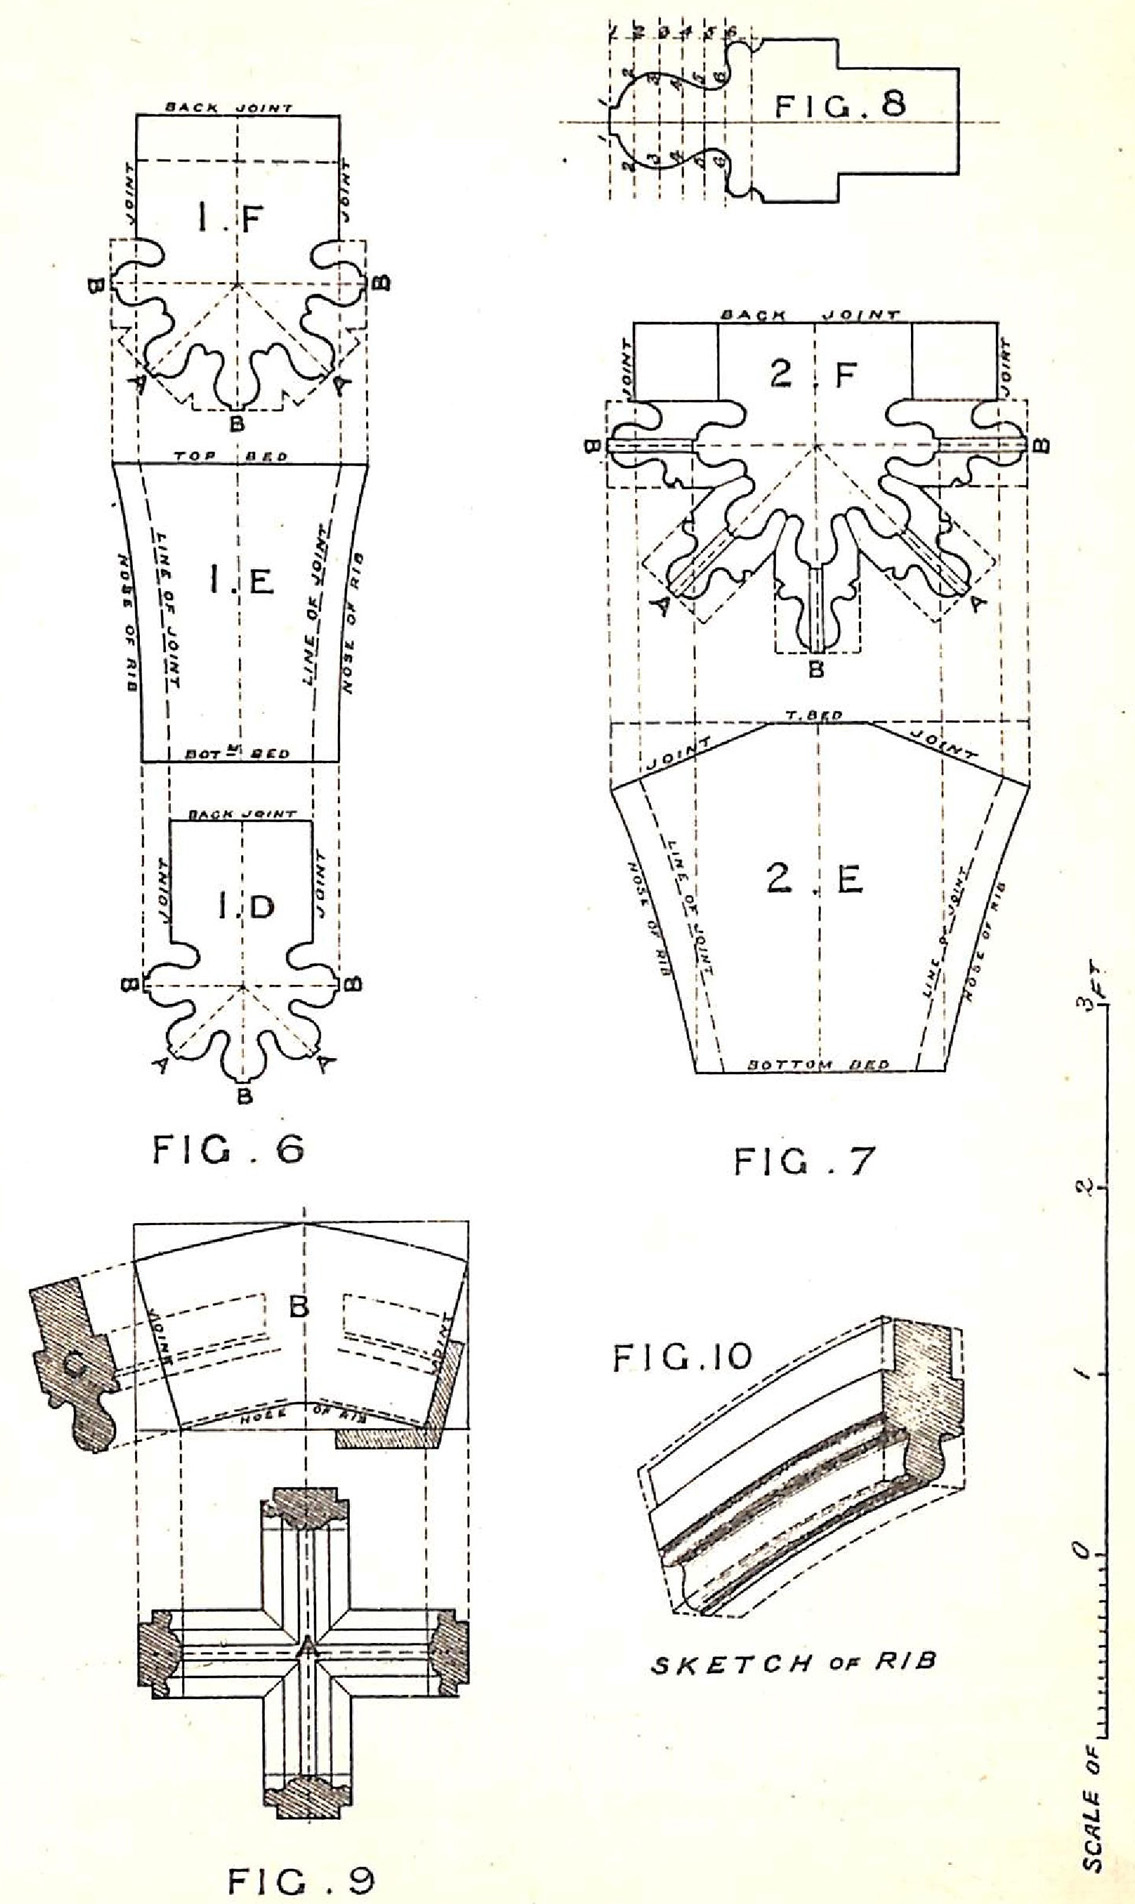 Plan of Joints